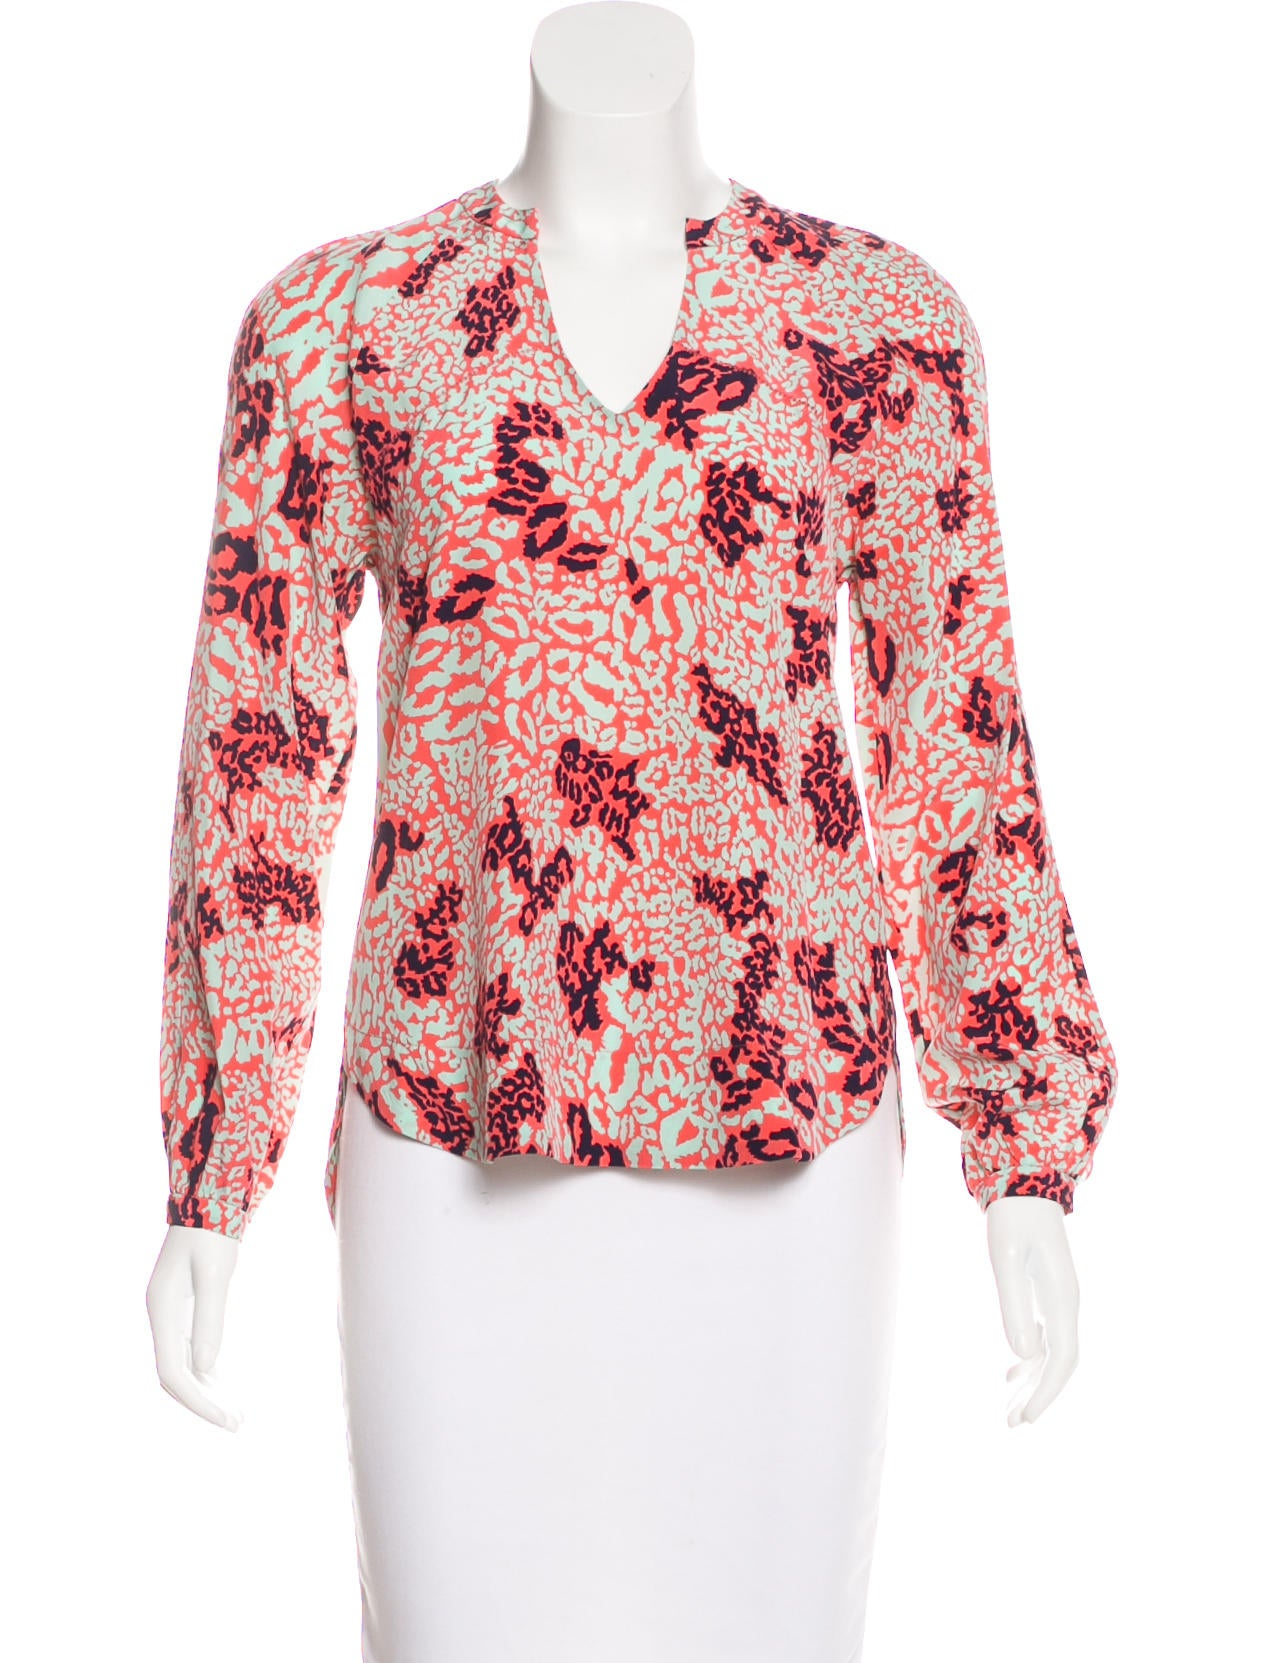 Diane Von Furstenberg Maiko Silk Top Clothing